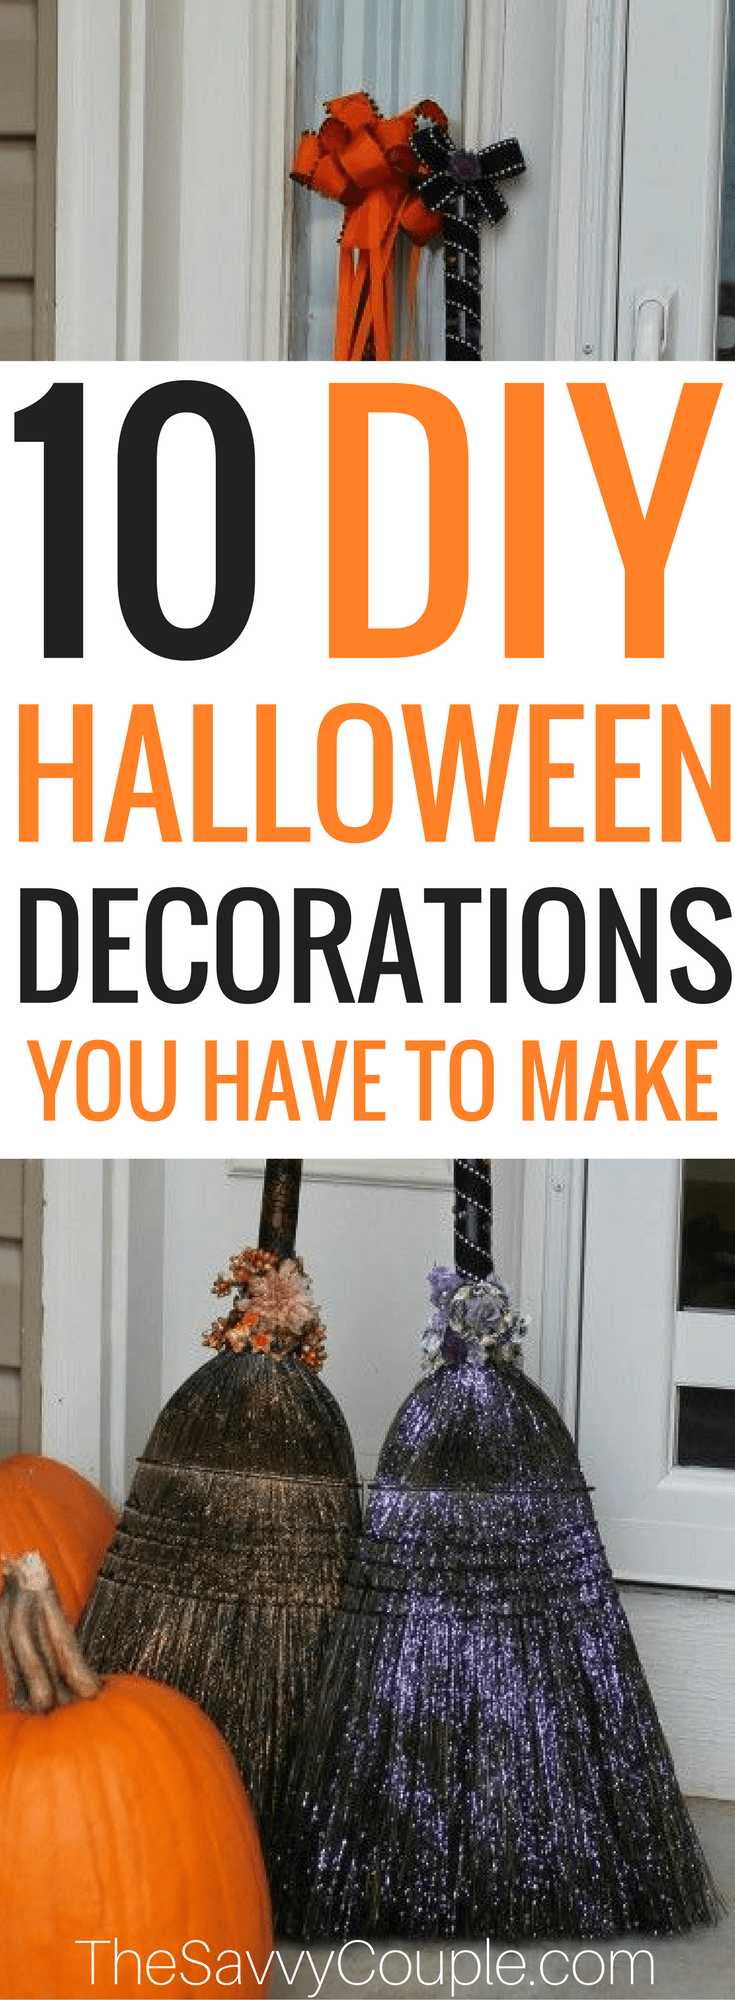 Here's a round up of 10 Halloween Decor Ideas! A list of the best DIY Halloween decor ideas using cheap supplies. Stop buying overpriced Halloween decorations and make your own for less. These Halloween decor DIY ideas are cheap and easy to make. Halloween is just around the corner. It is time to get into the Halloween spirit with some gorgeous and spooky decorations. Halloween decor | Halloween | Frugal Halloween decor | Cheap Halloween decor | DIY Halloween | The Savvy Couple